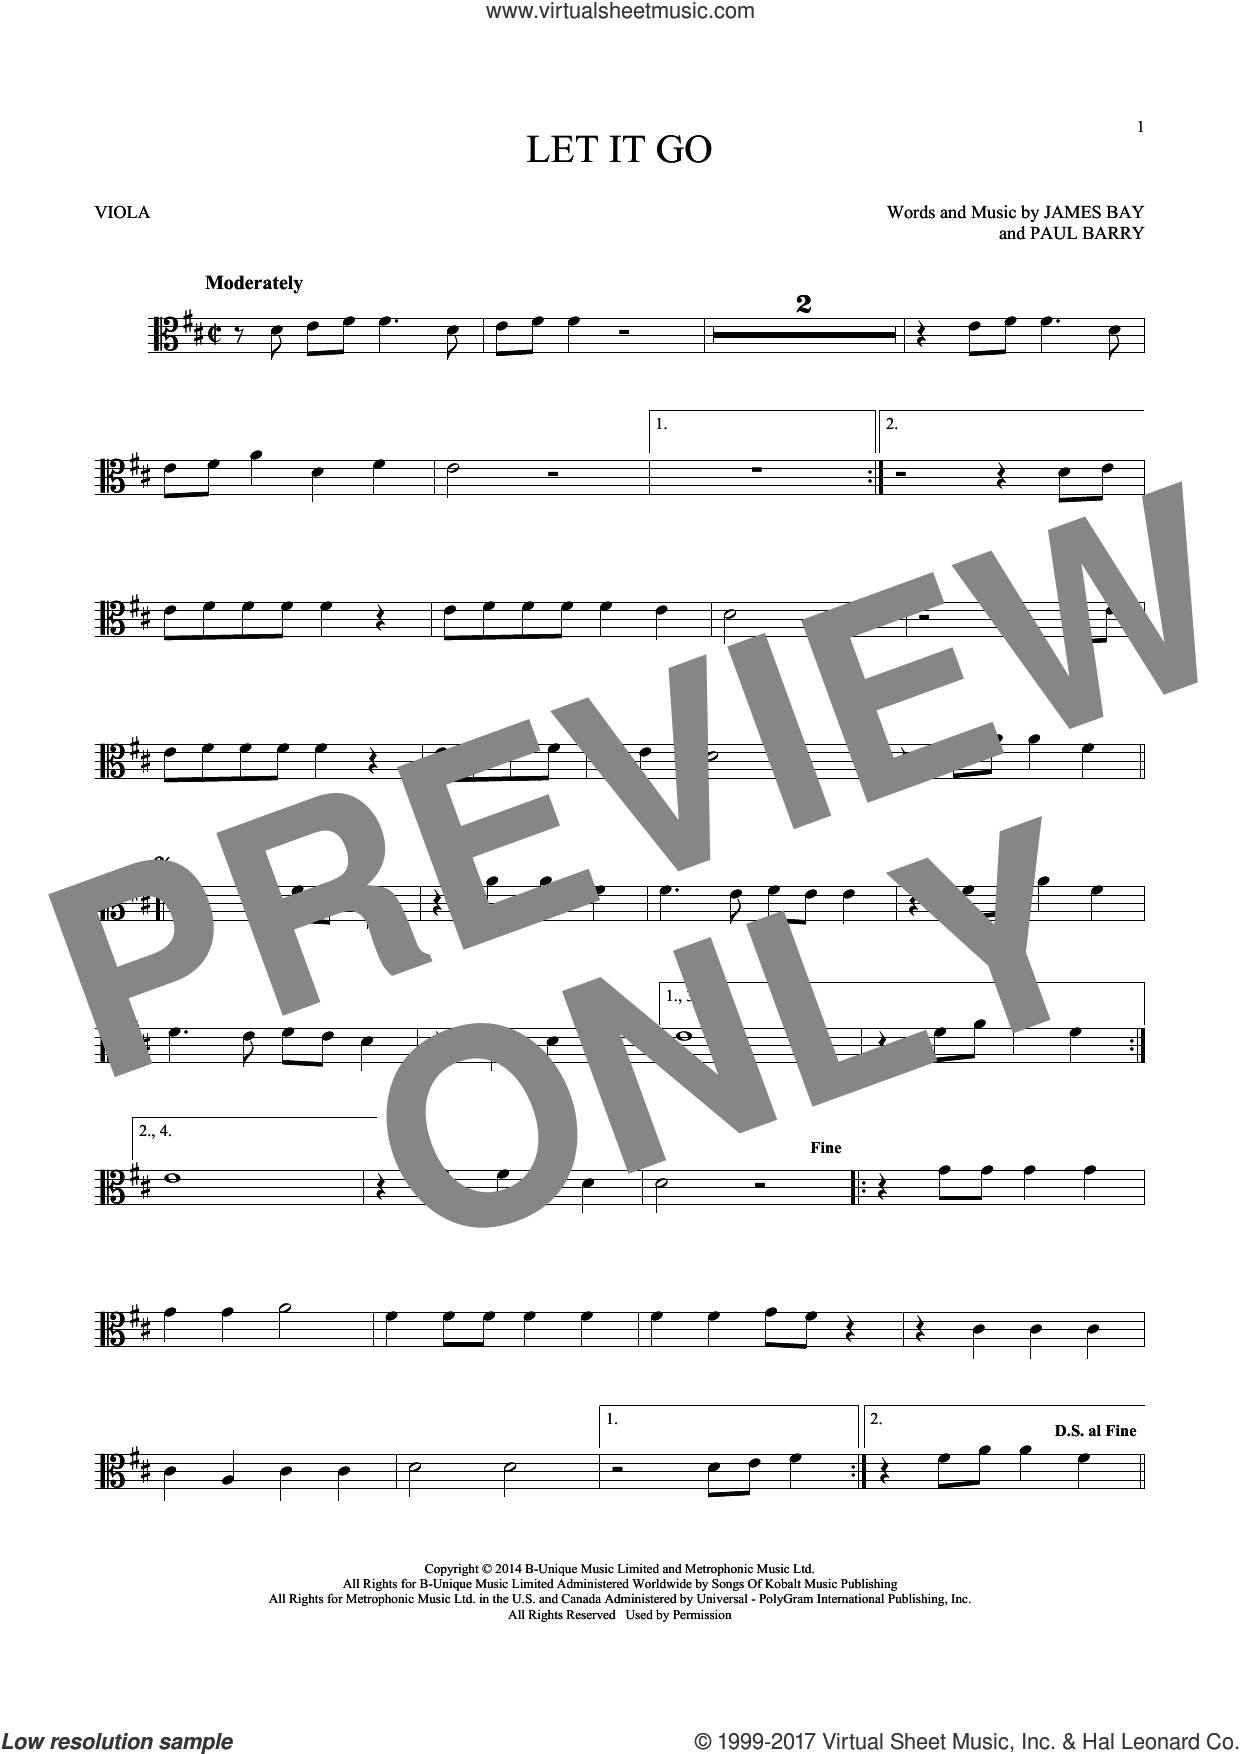 Let It Go sheet music for viola solo by James Bay and Paul Barry, intermediate skill level